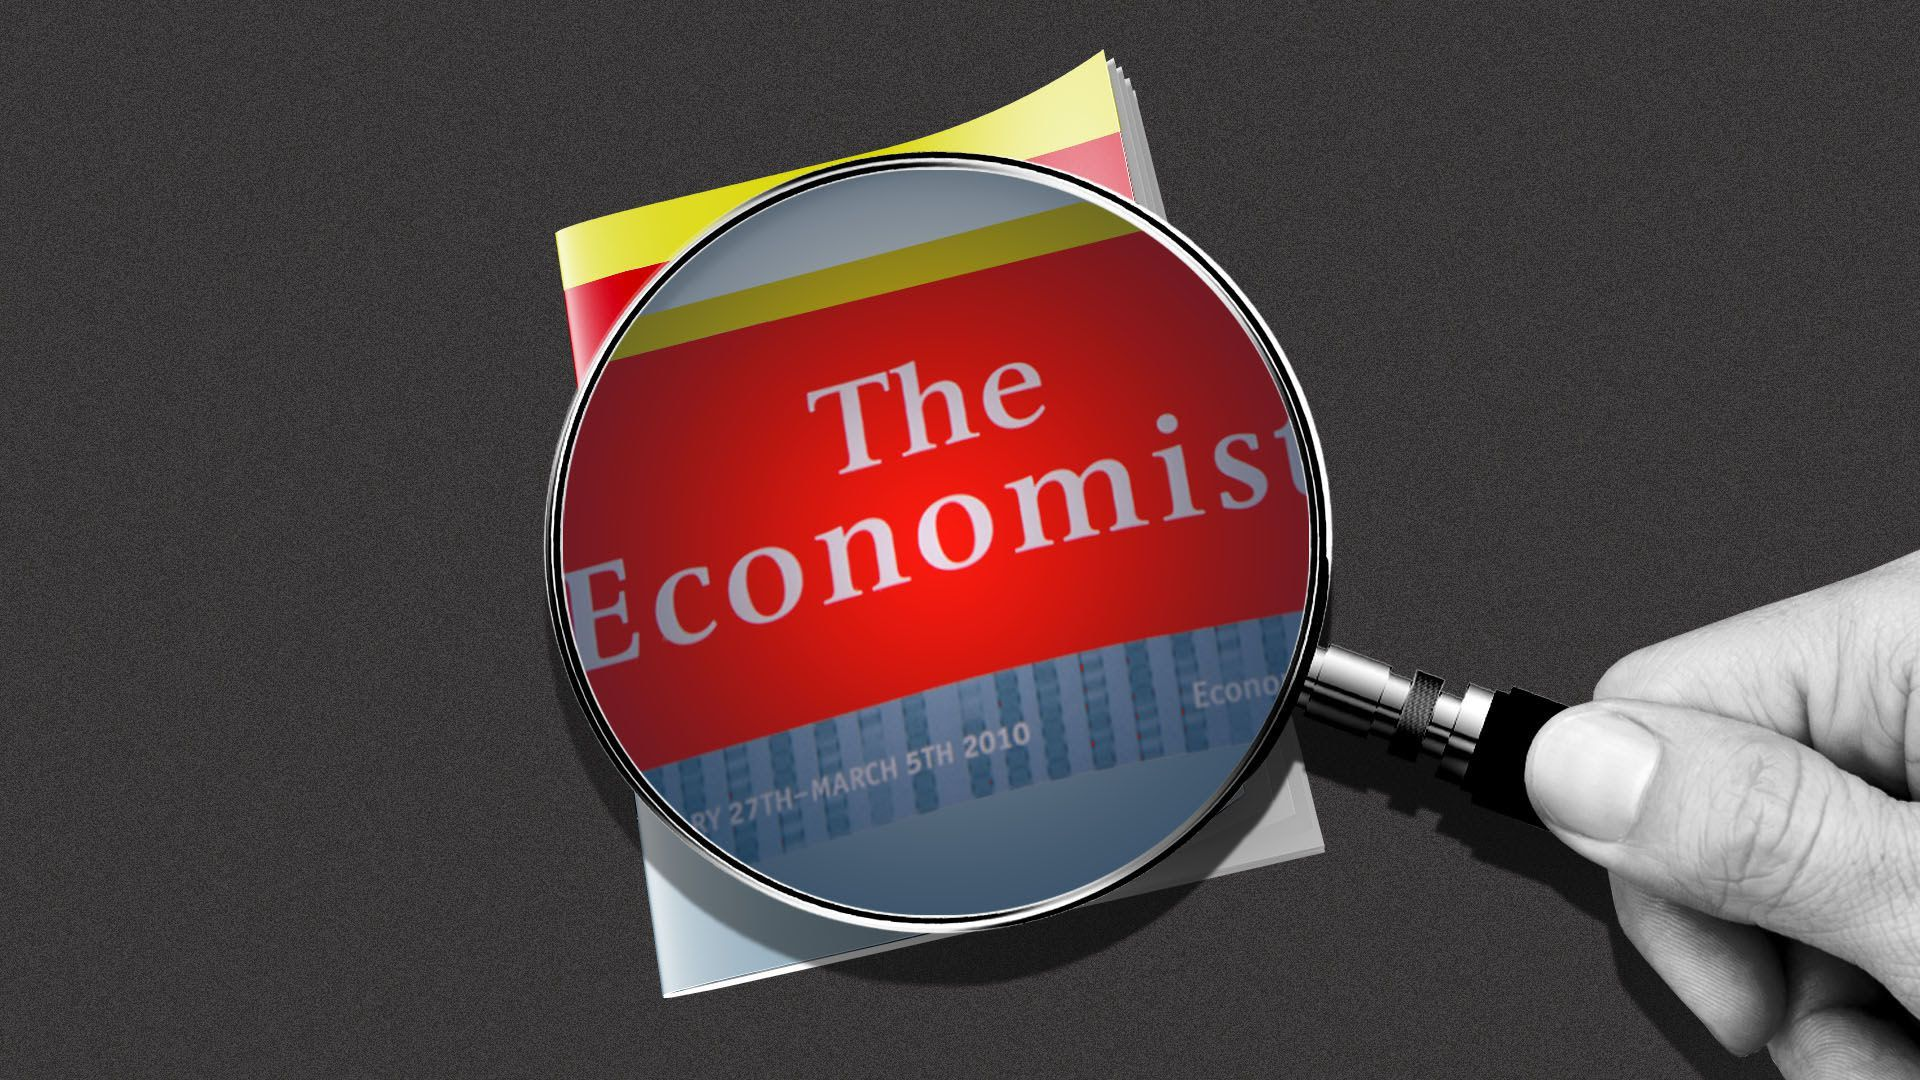 A magnifying glass is being held up overtop the Economist magazine.